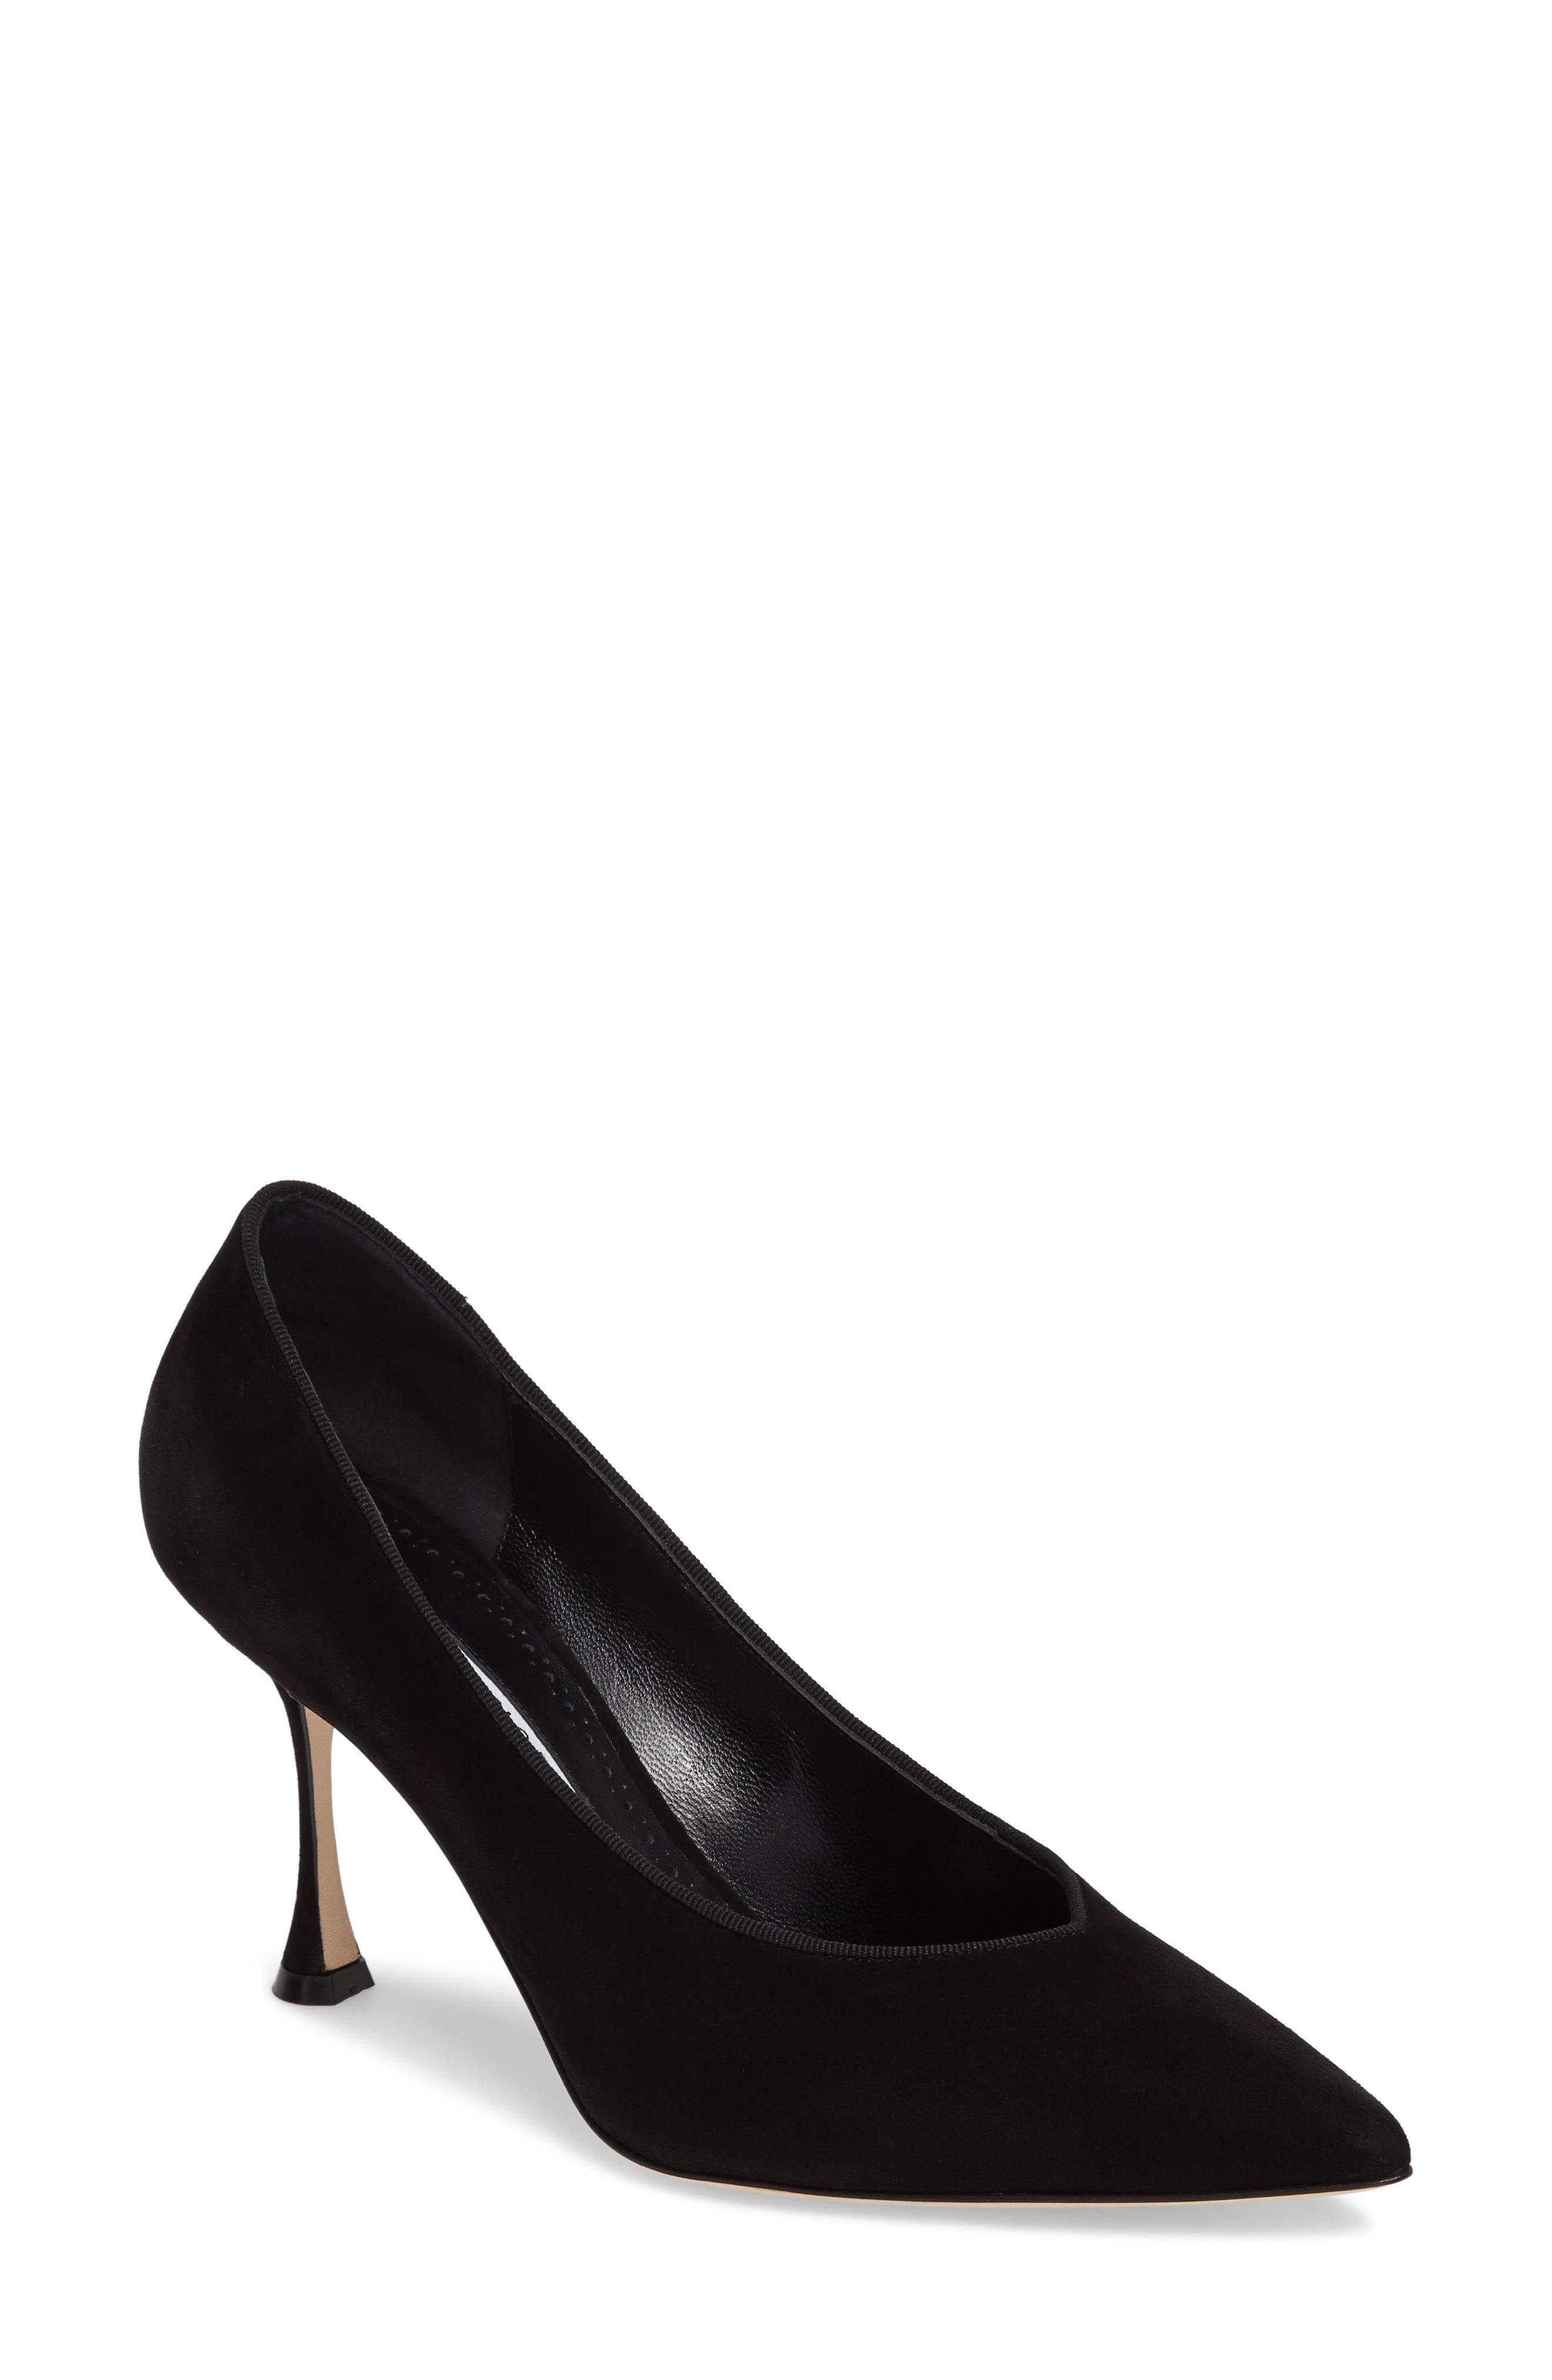 Urgenze Pointy Toe Pump,                         Main,                         color, 001